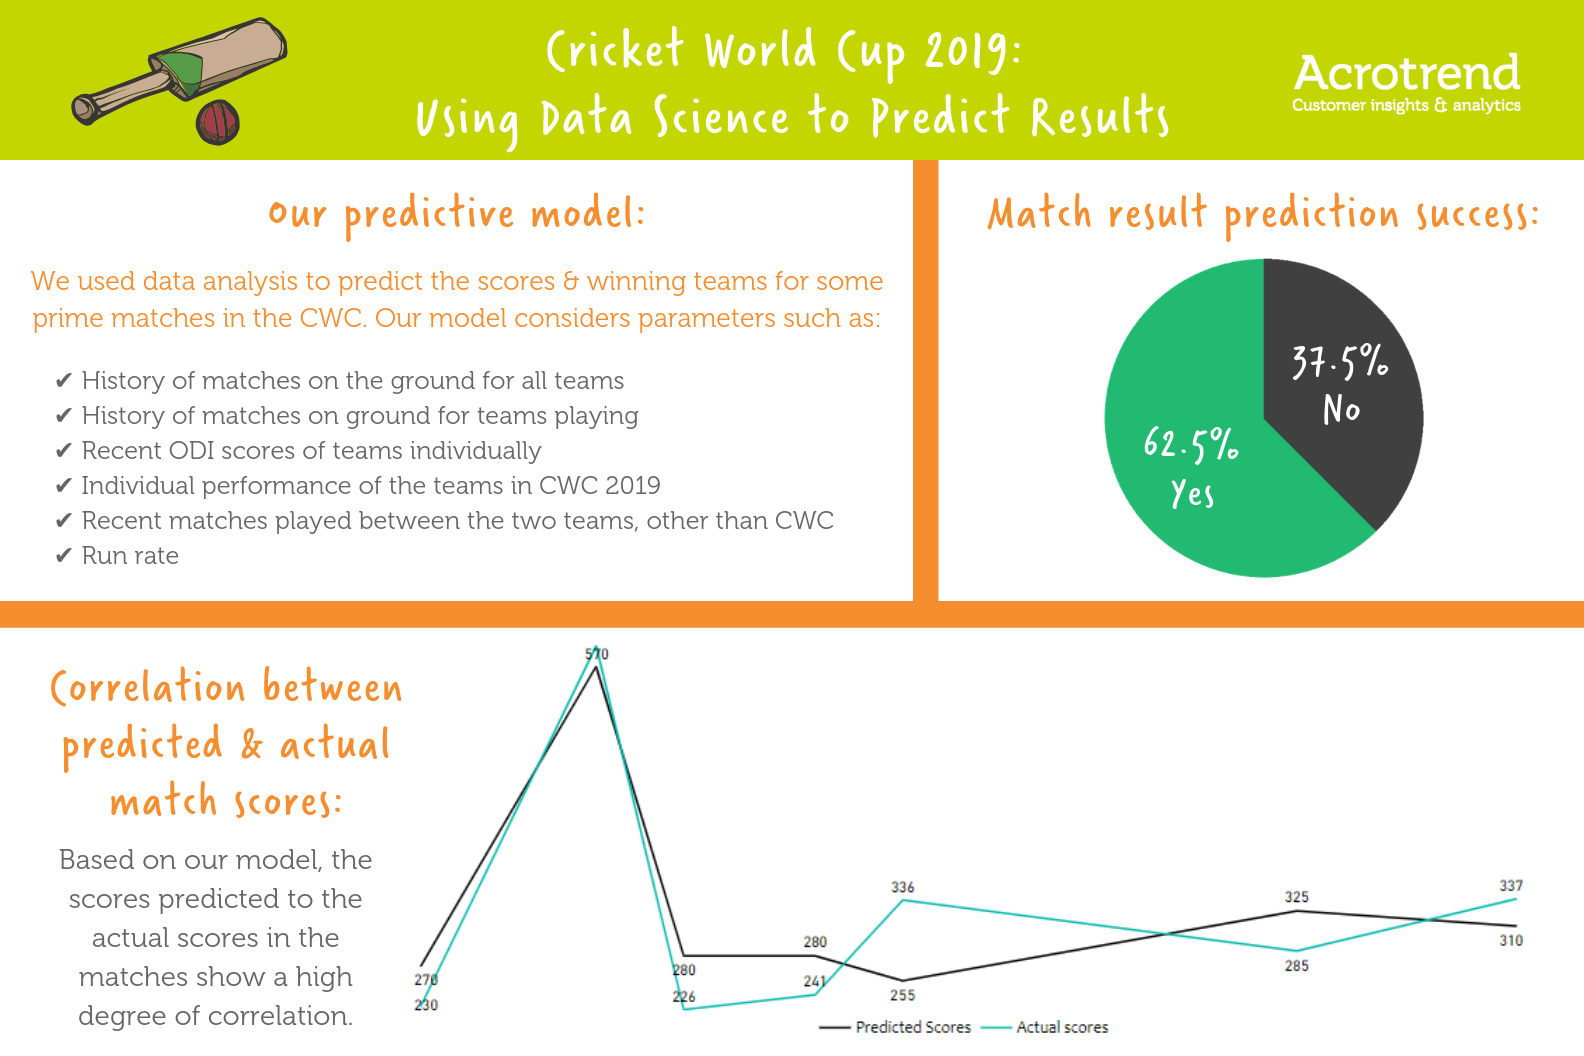 Cricket World Cup Summary Infographic